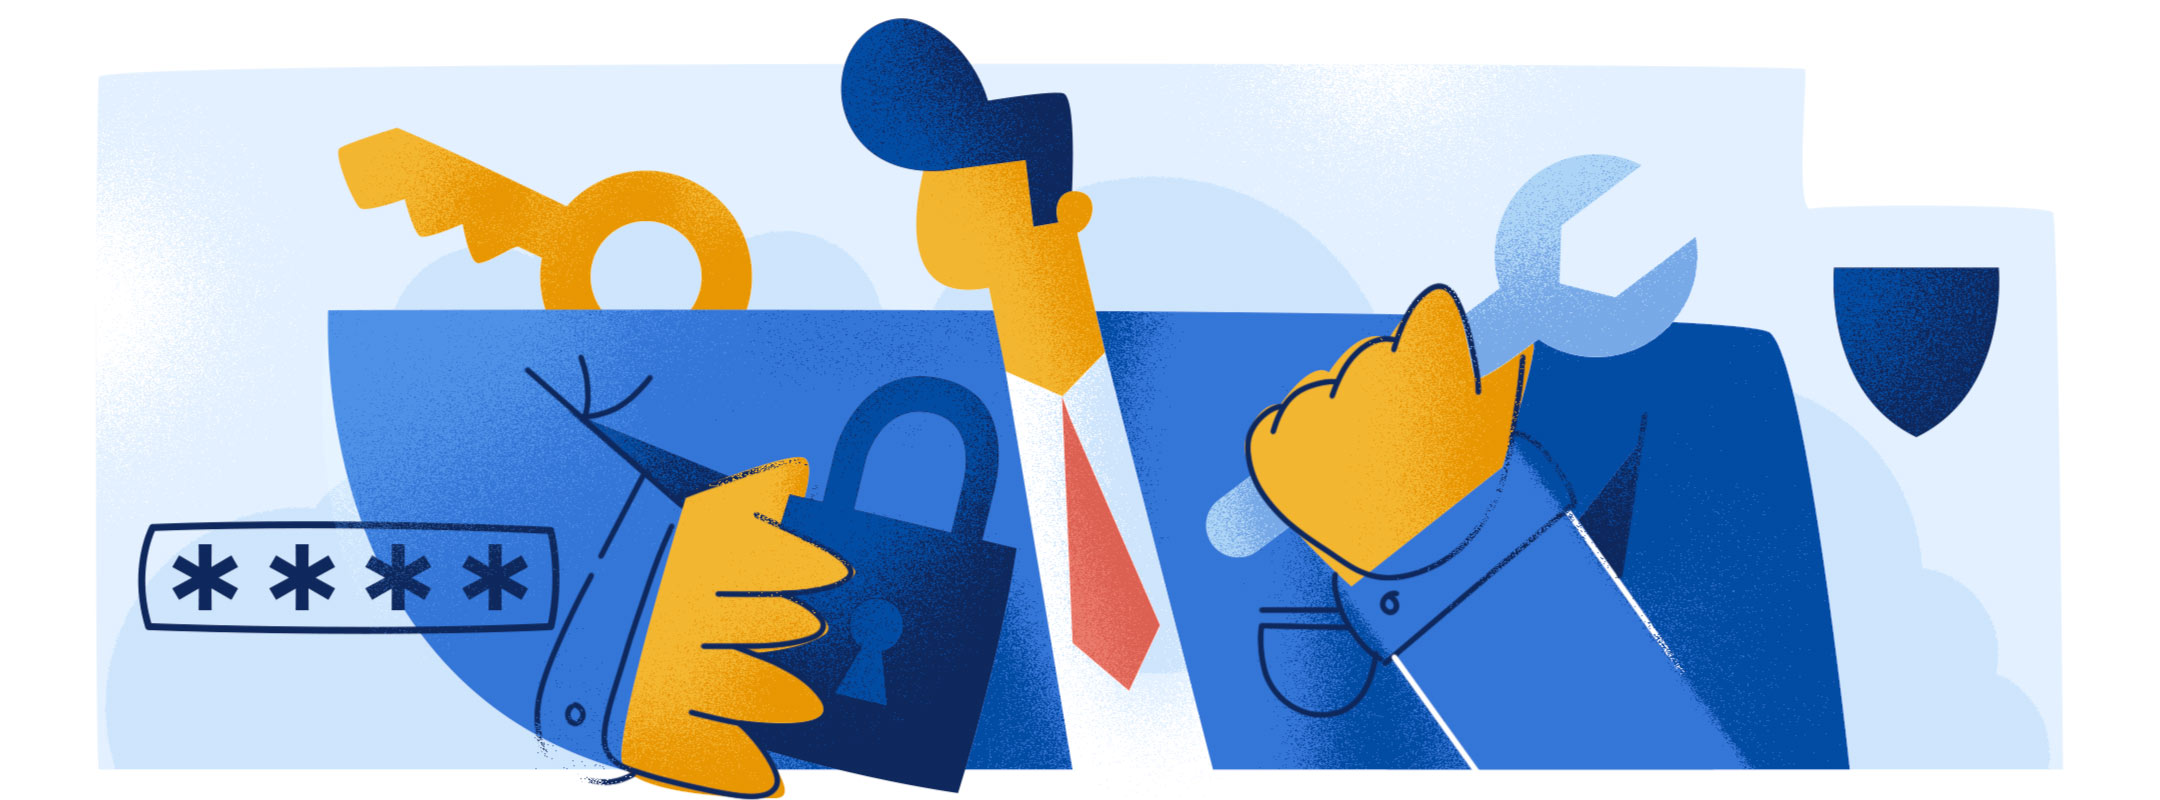 illustration of man and imagery related to a data breach response